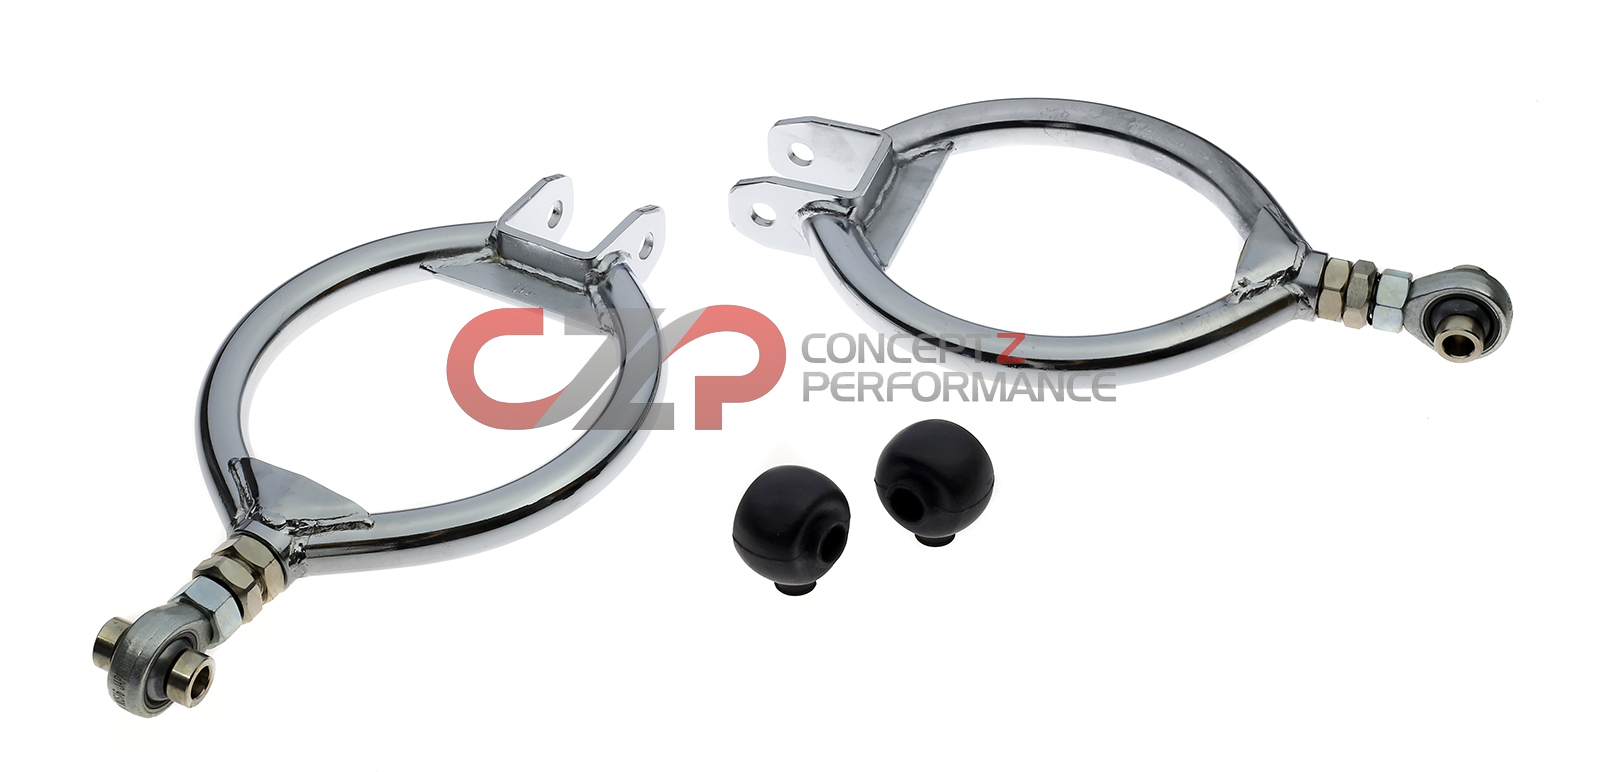 Powertrix Rear Camber Upper Control Arms RUCA - Nissan 240SX, 300ZX, Silvia, S13 S14 Z32, Skyline GTS-T, GT-R R32 R33 R34